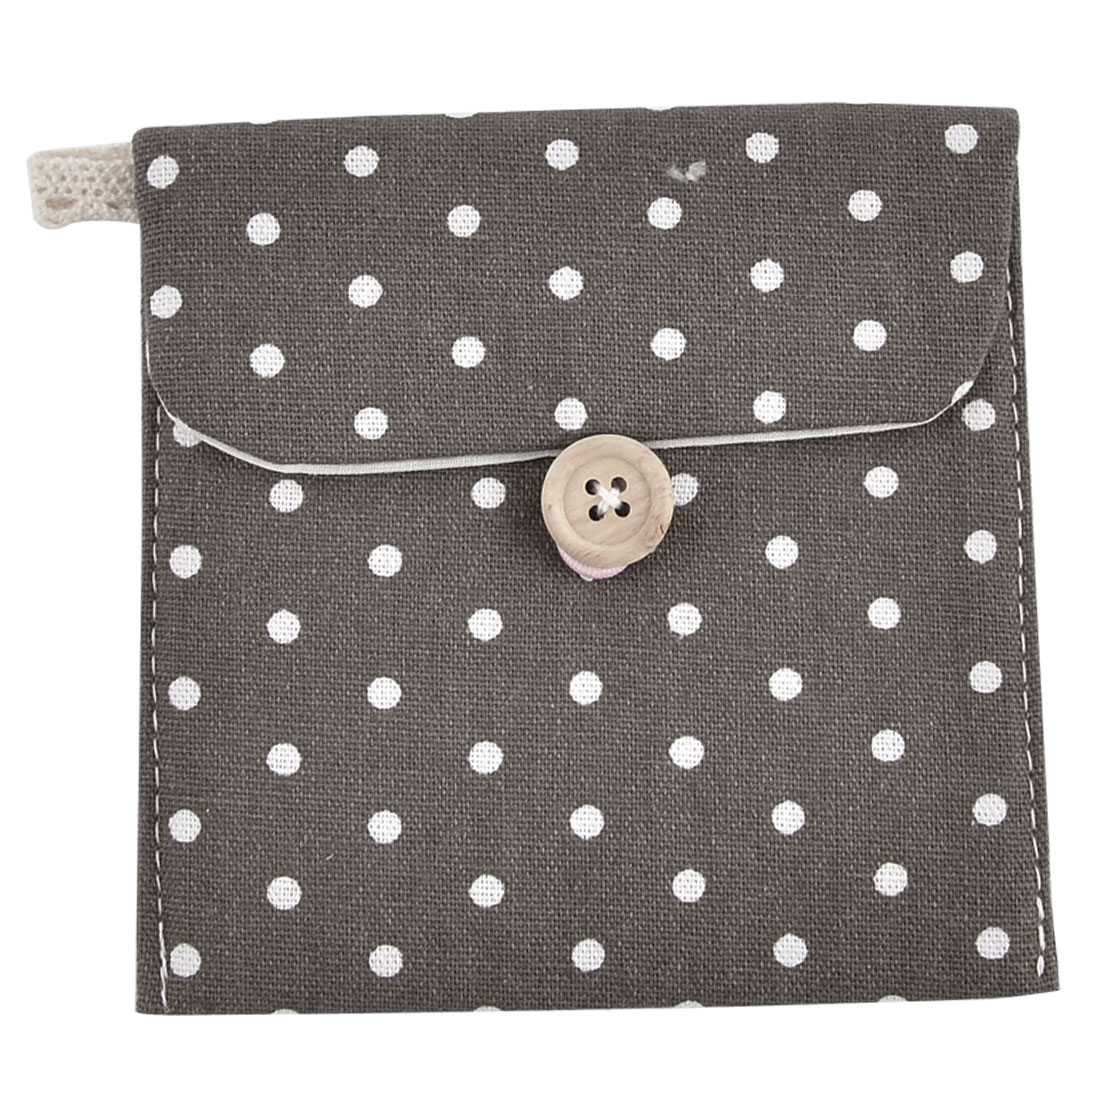 Lady Linen Dots Pattern Button Closure Design Sanitary Napkin Pad Bag Gray 2 Pcs